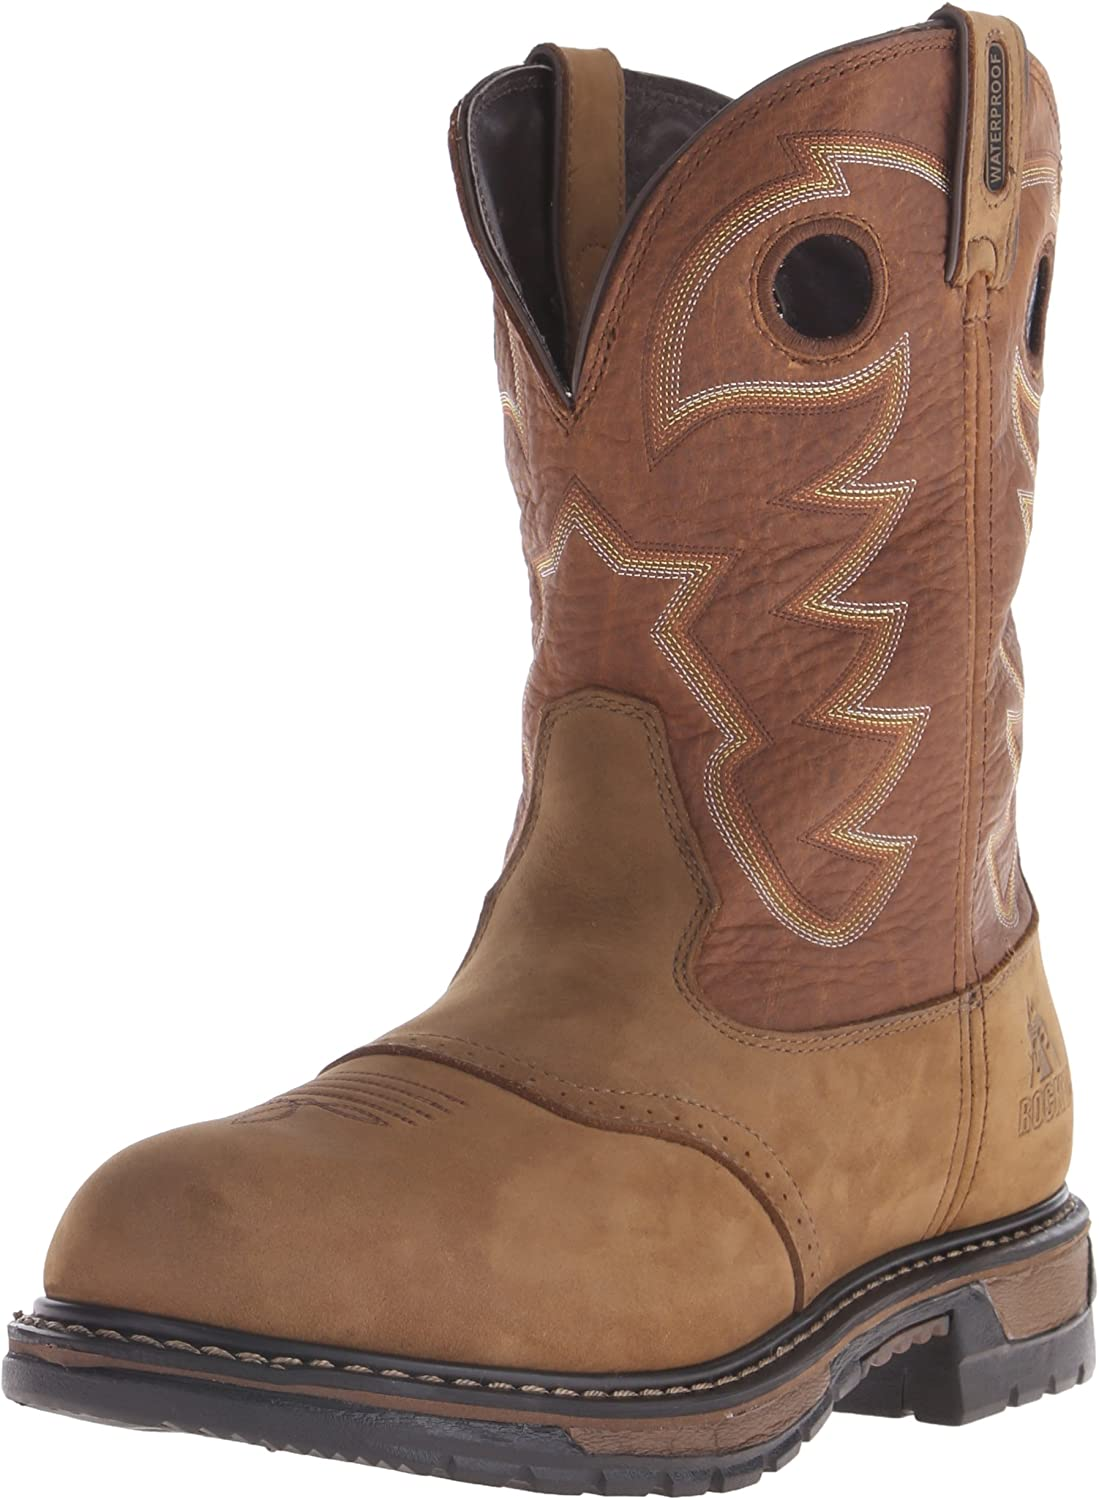 Sales of SALE items from new works Rocky Men's Original Ride Saffron Boot Work Dealing full price reduction